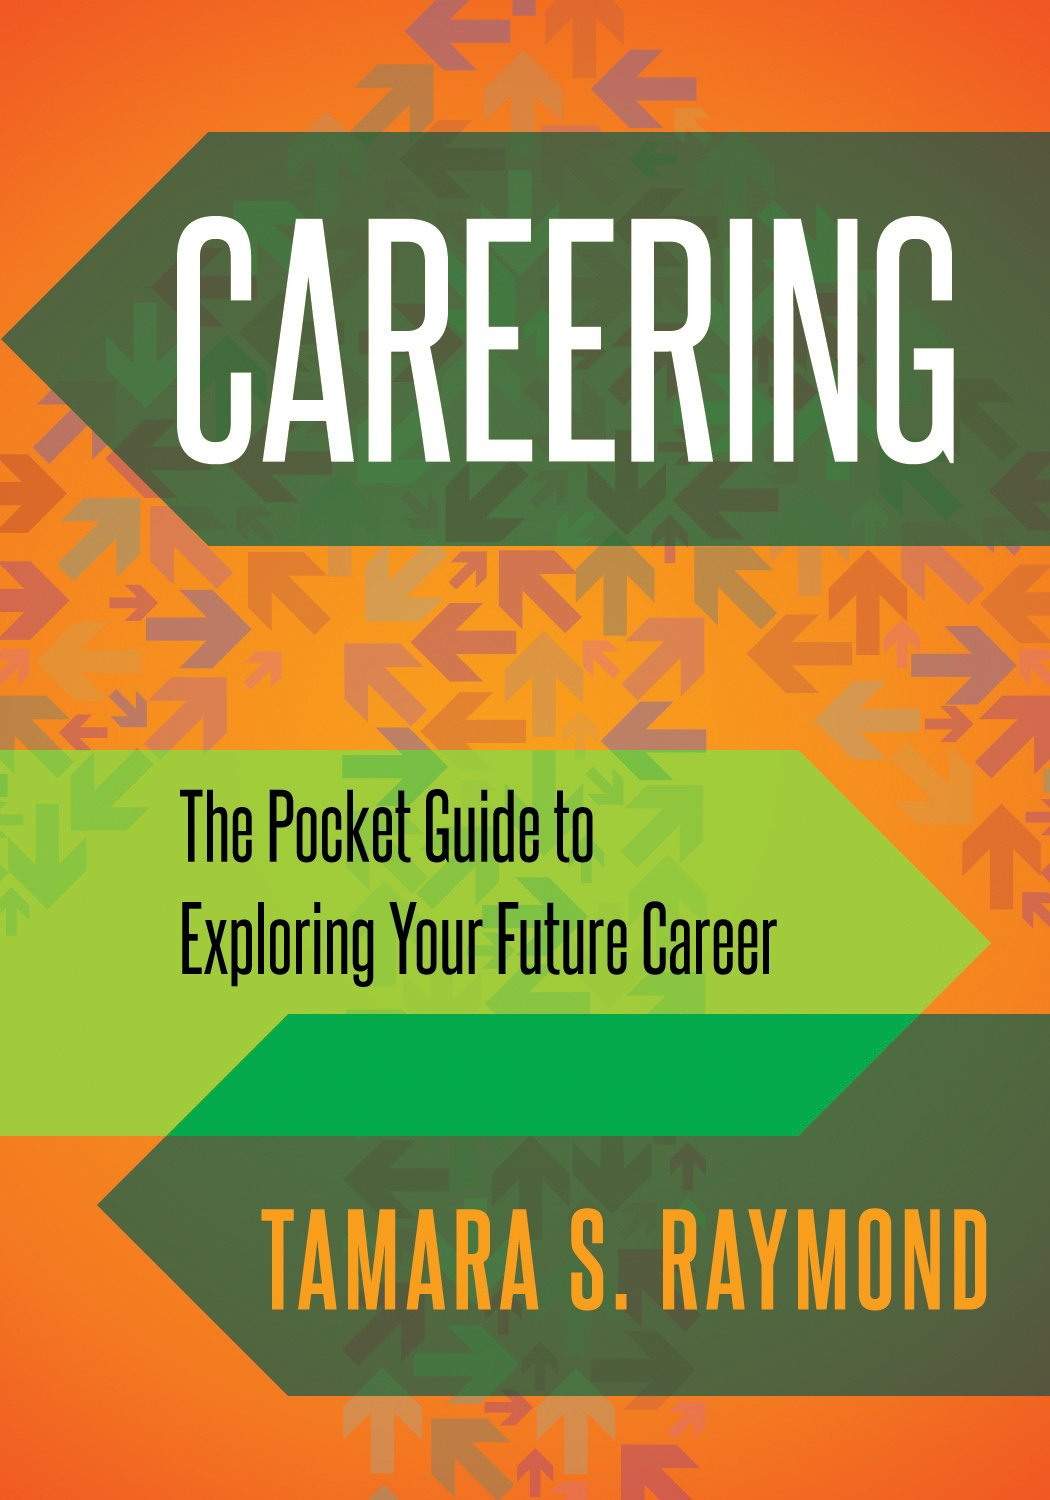 Careering: The Pocket Guide to Exploring Your Future Career